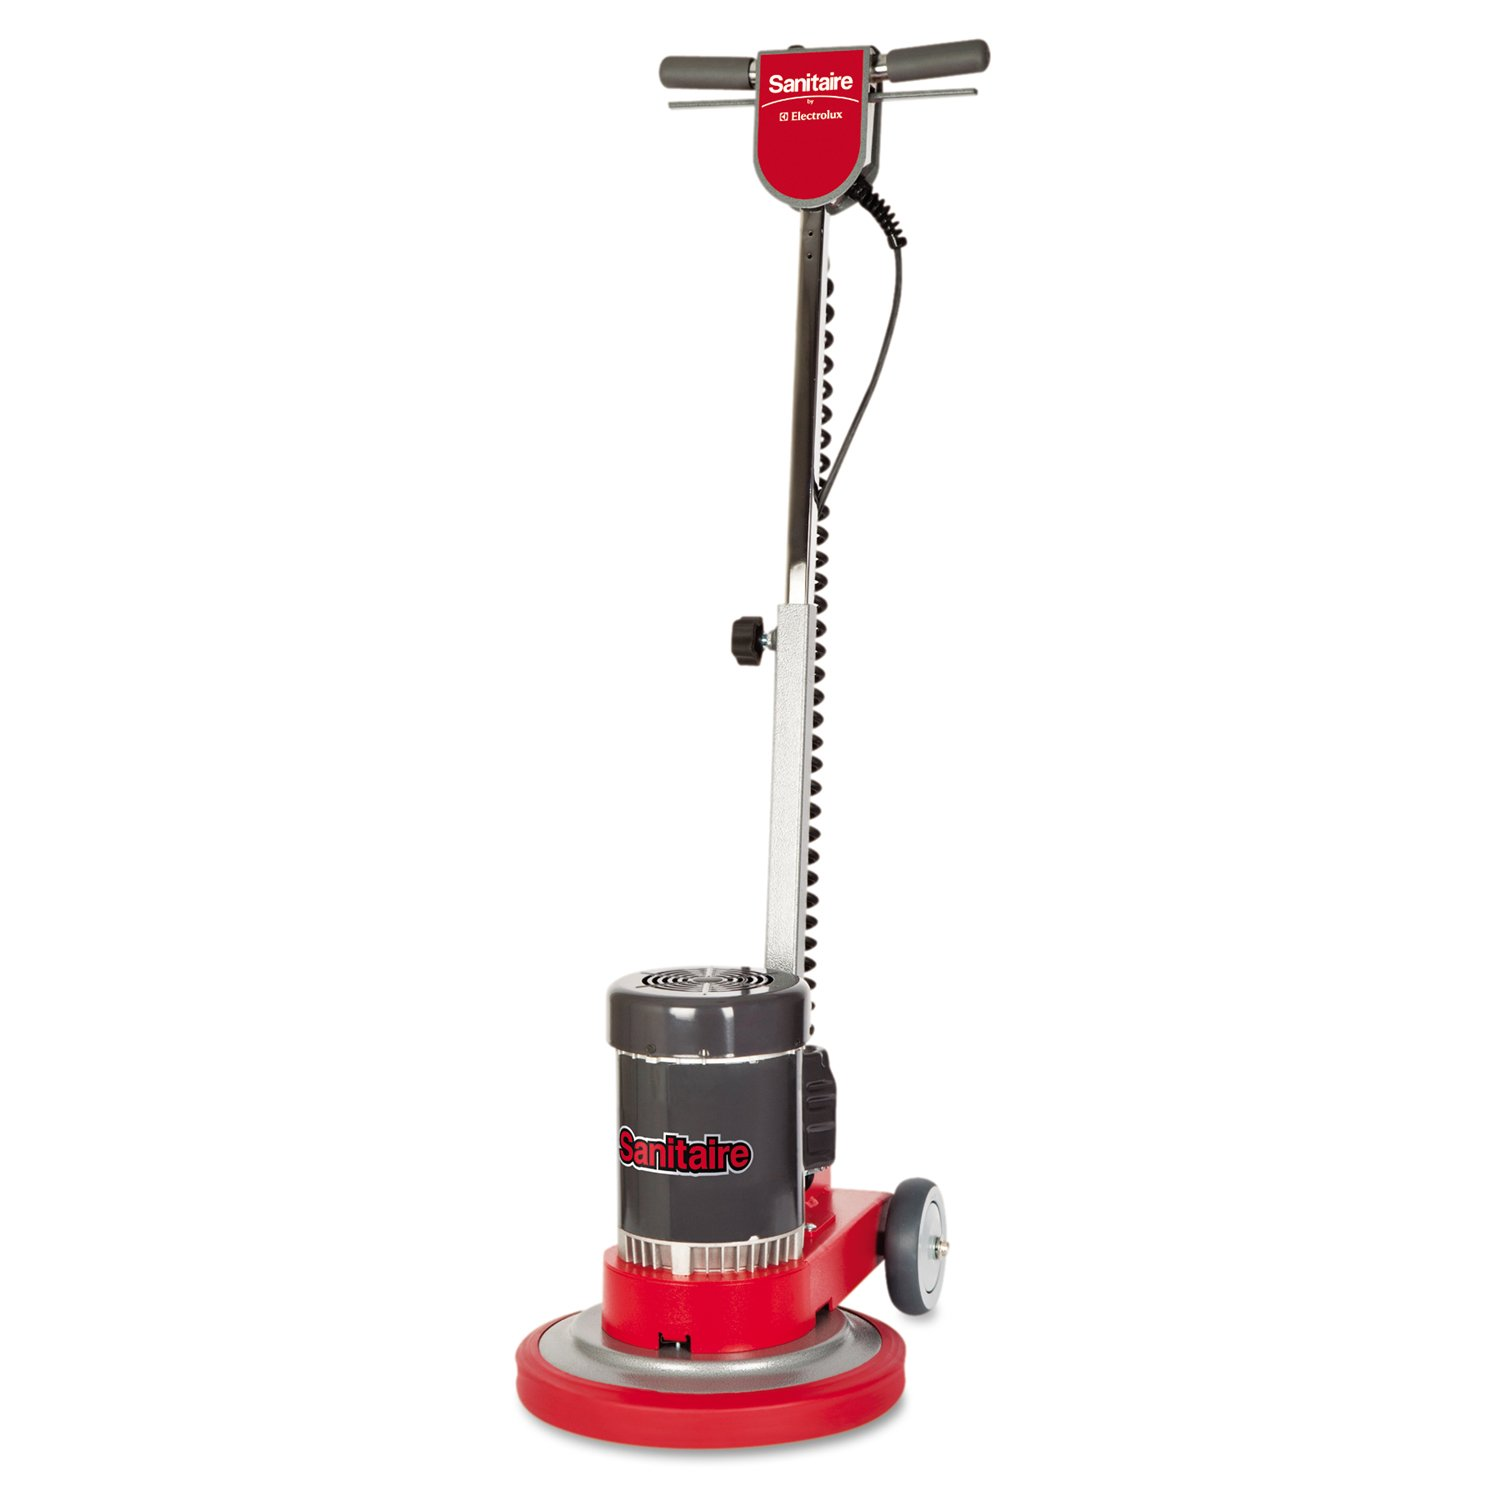 Sanitaire EUKSC6001B Floor Machine, 0.5 HP Power, 25' Cord, 19'' Length x 13'' Width x 34'' Height, Red